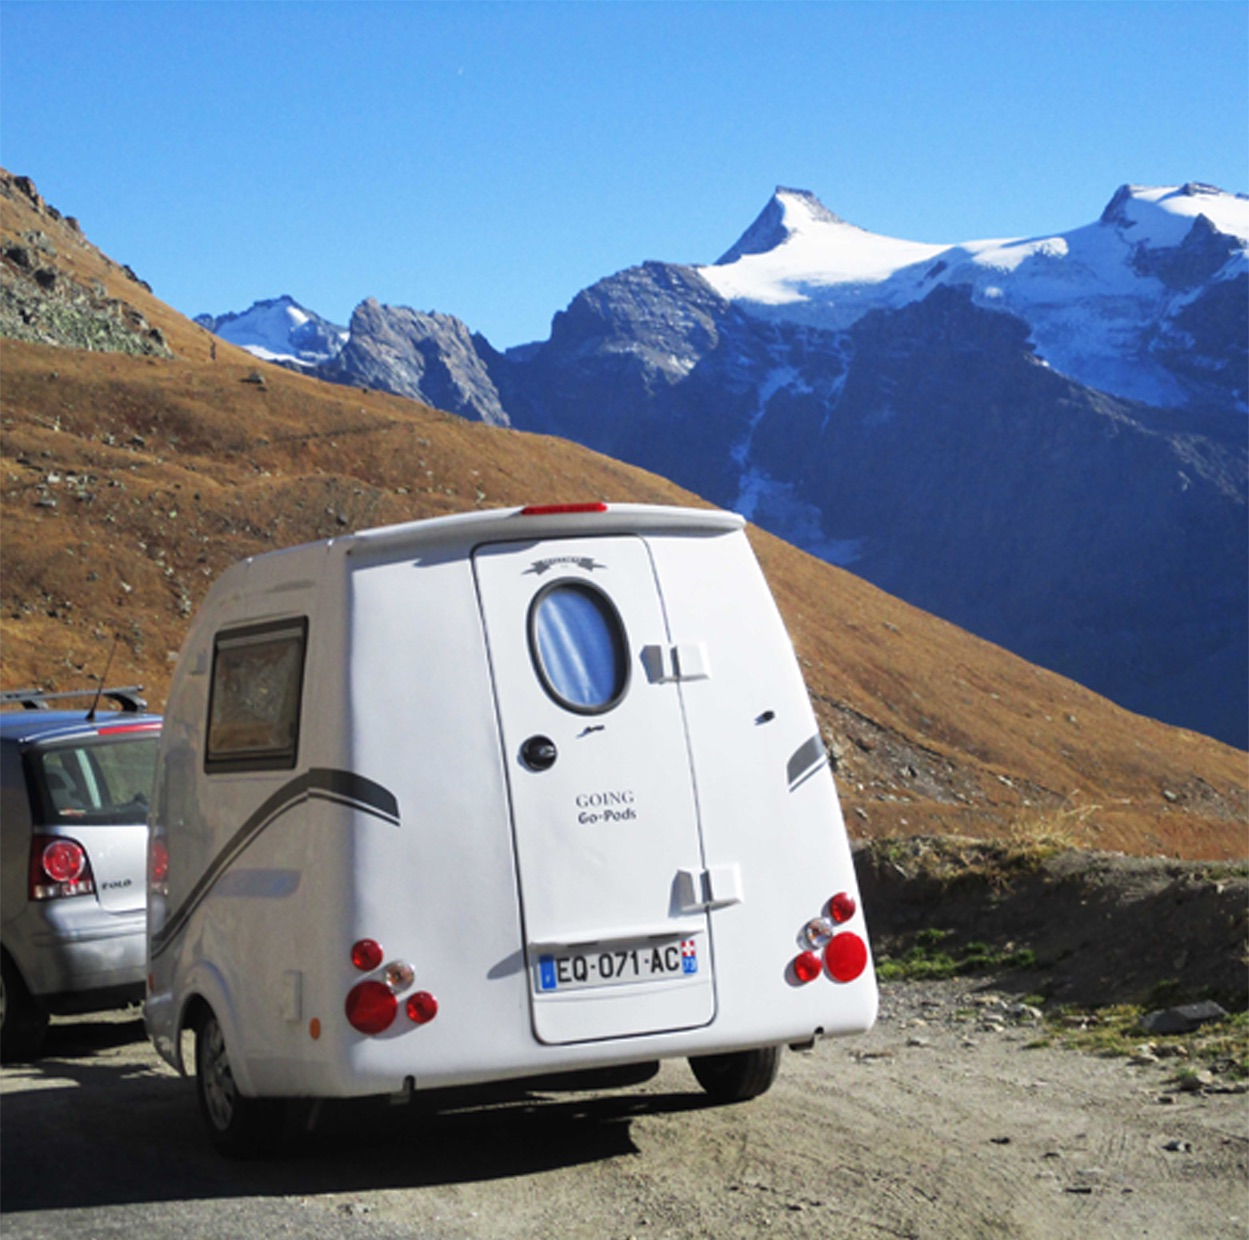 Go-Pod in the Alps